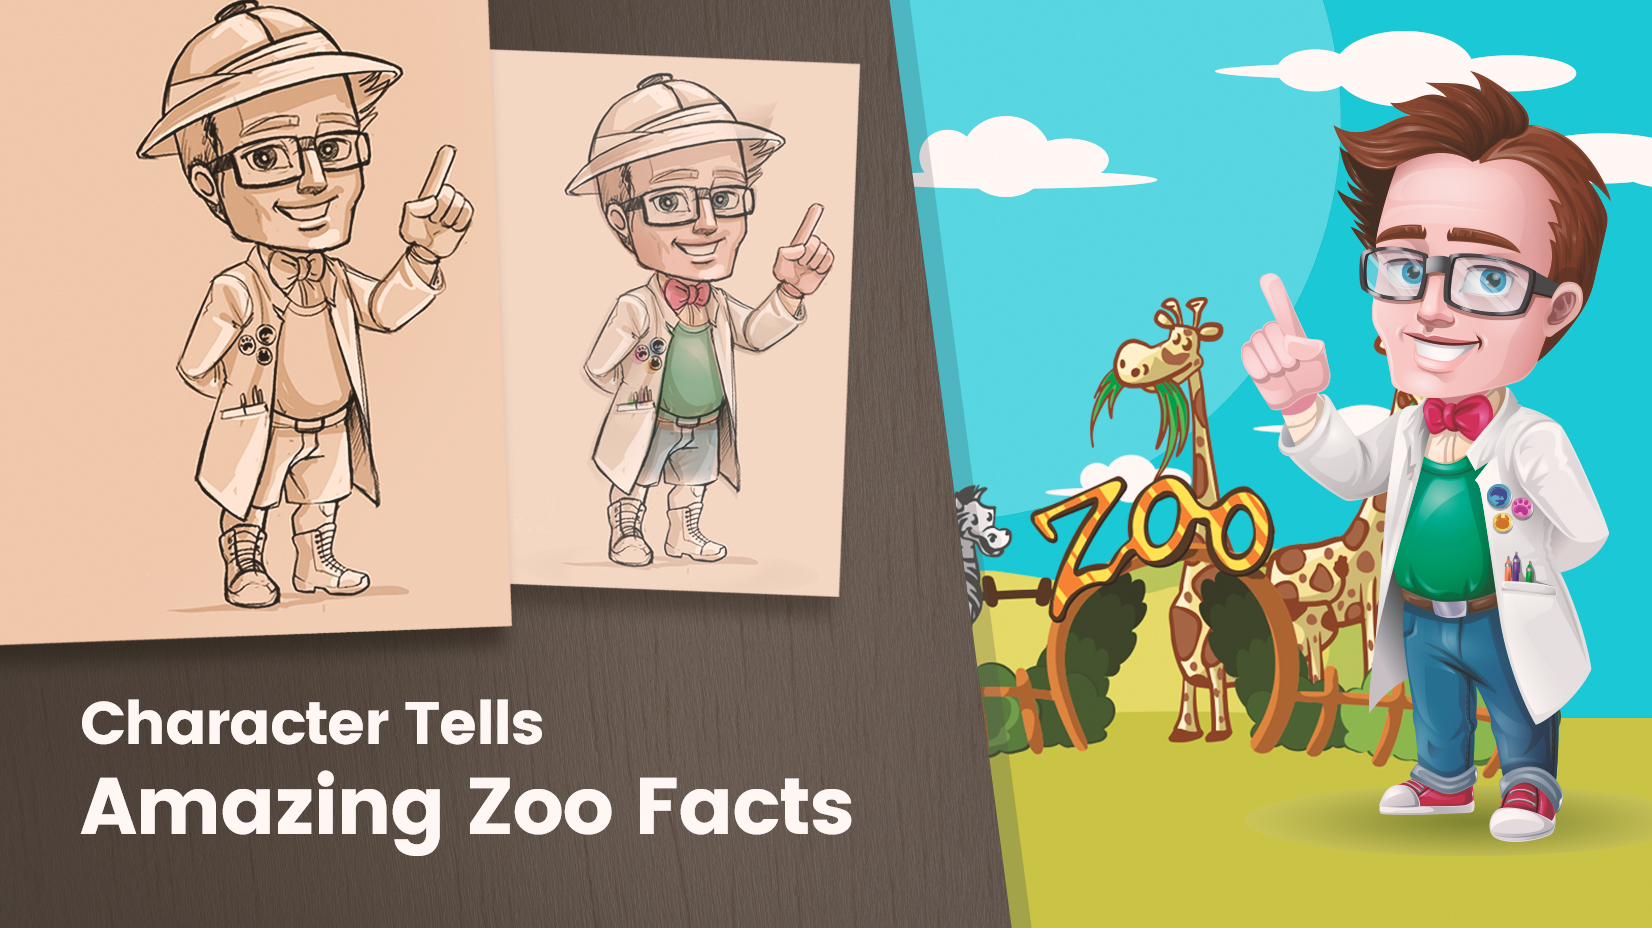 Case study: Character Tells Amazing Zoo Facts